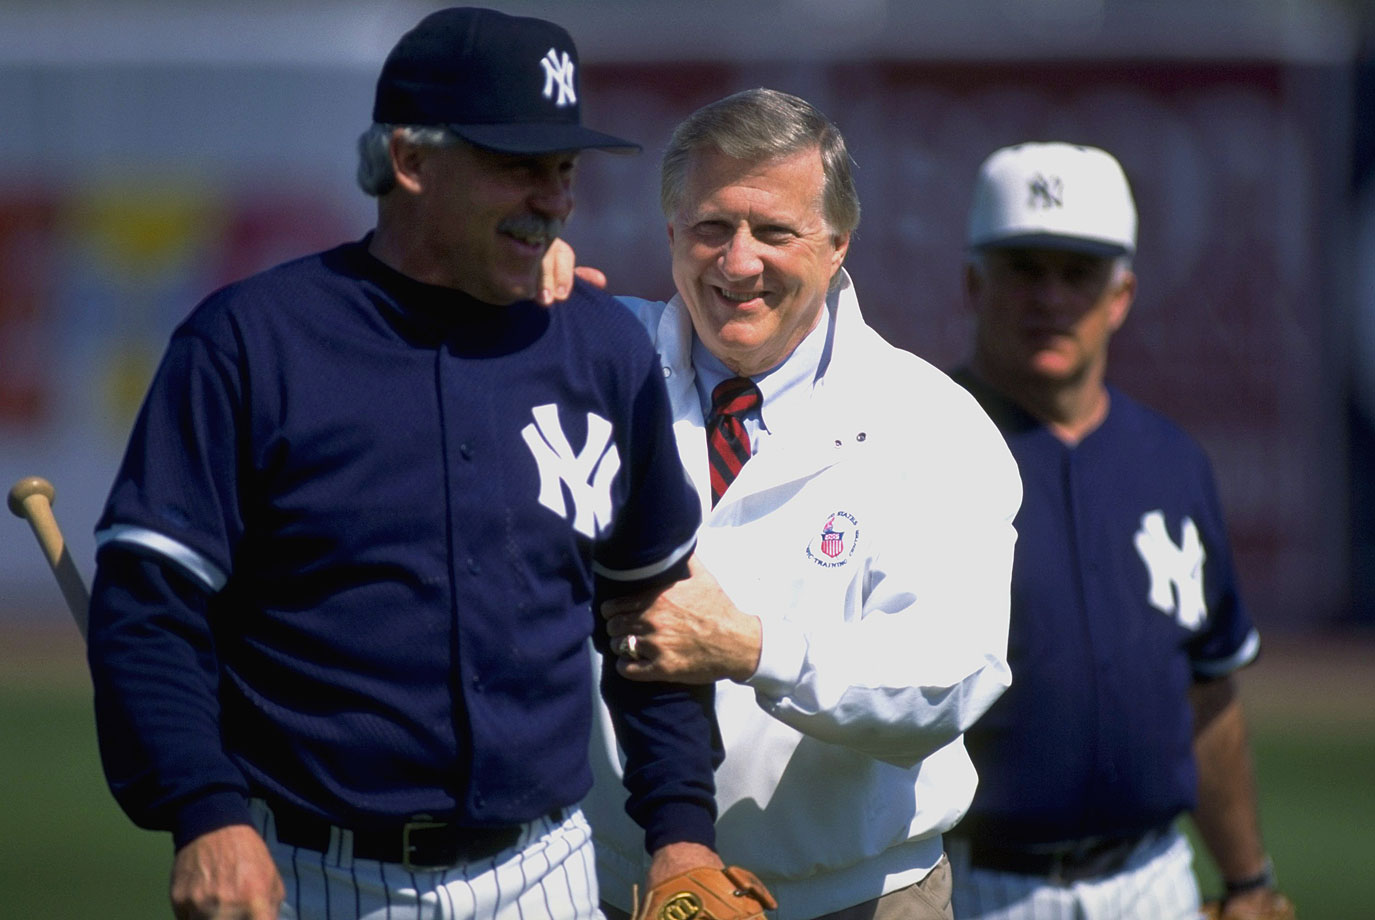 """George Steinbrenner jokes with coach Jim """"Catfish"""" Hunter during the New York Yankees spring training on Feb. 23, 1996 at Legends Field in Tampa, Fla."""